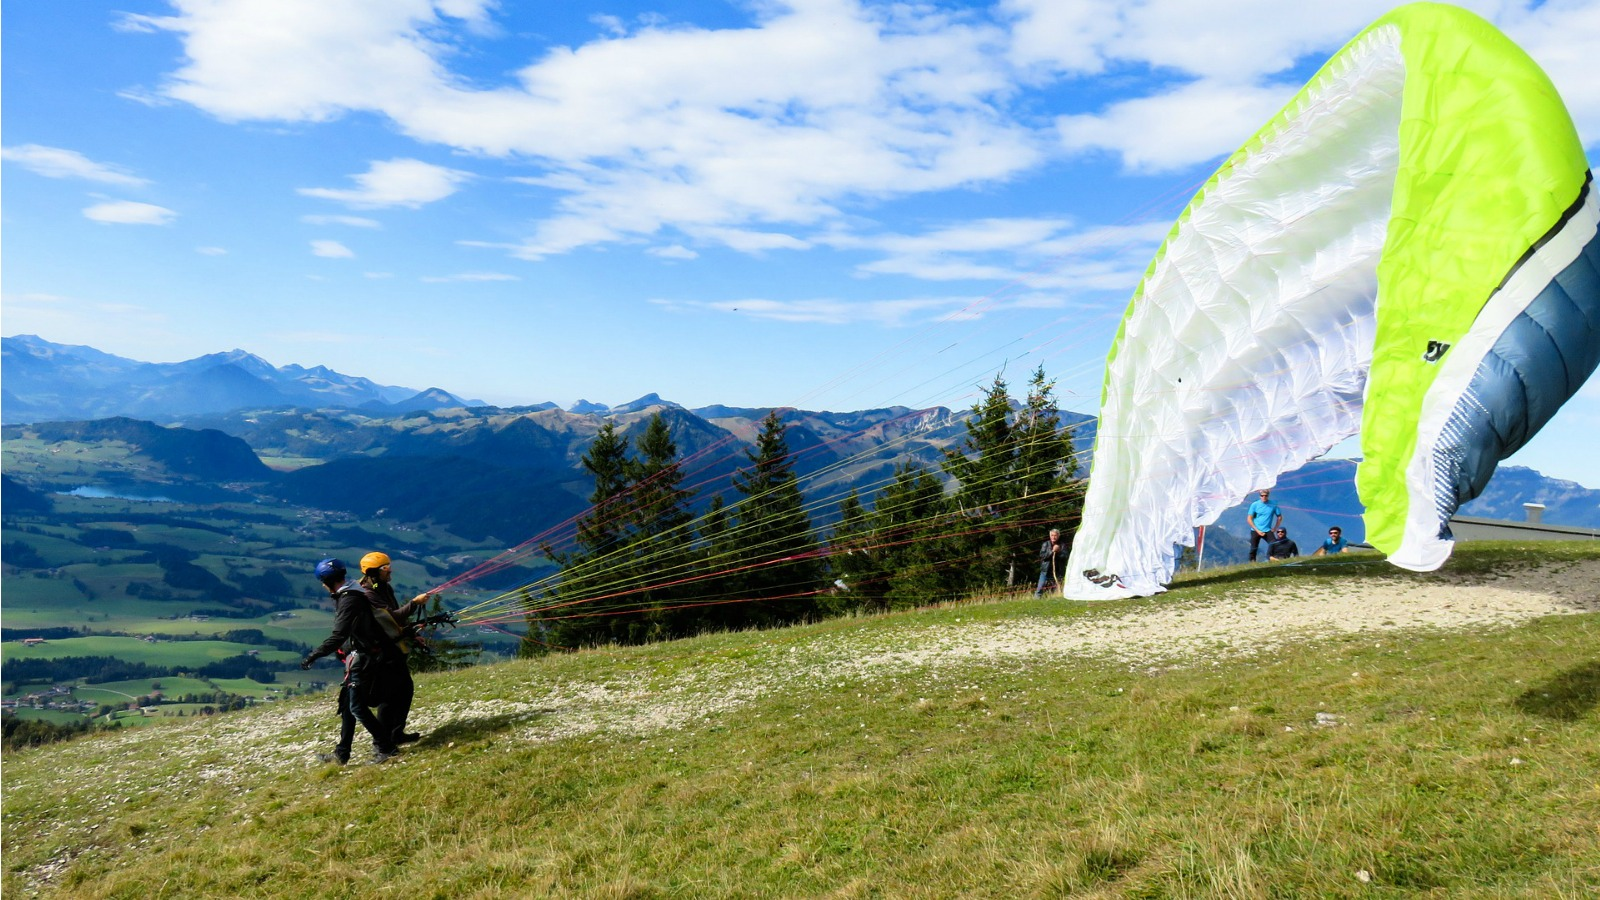 Things to do in Alaska - Paragliding